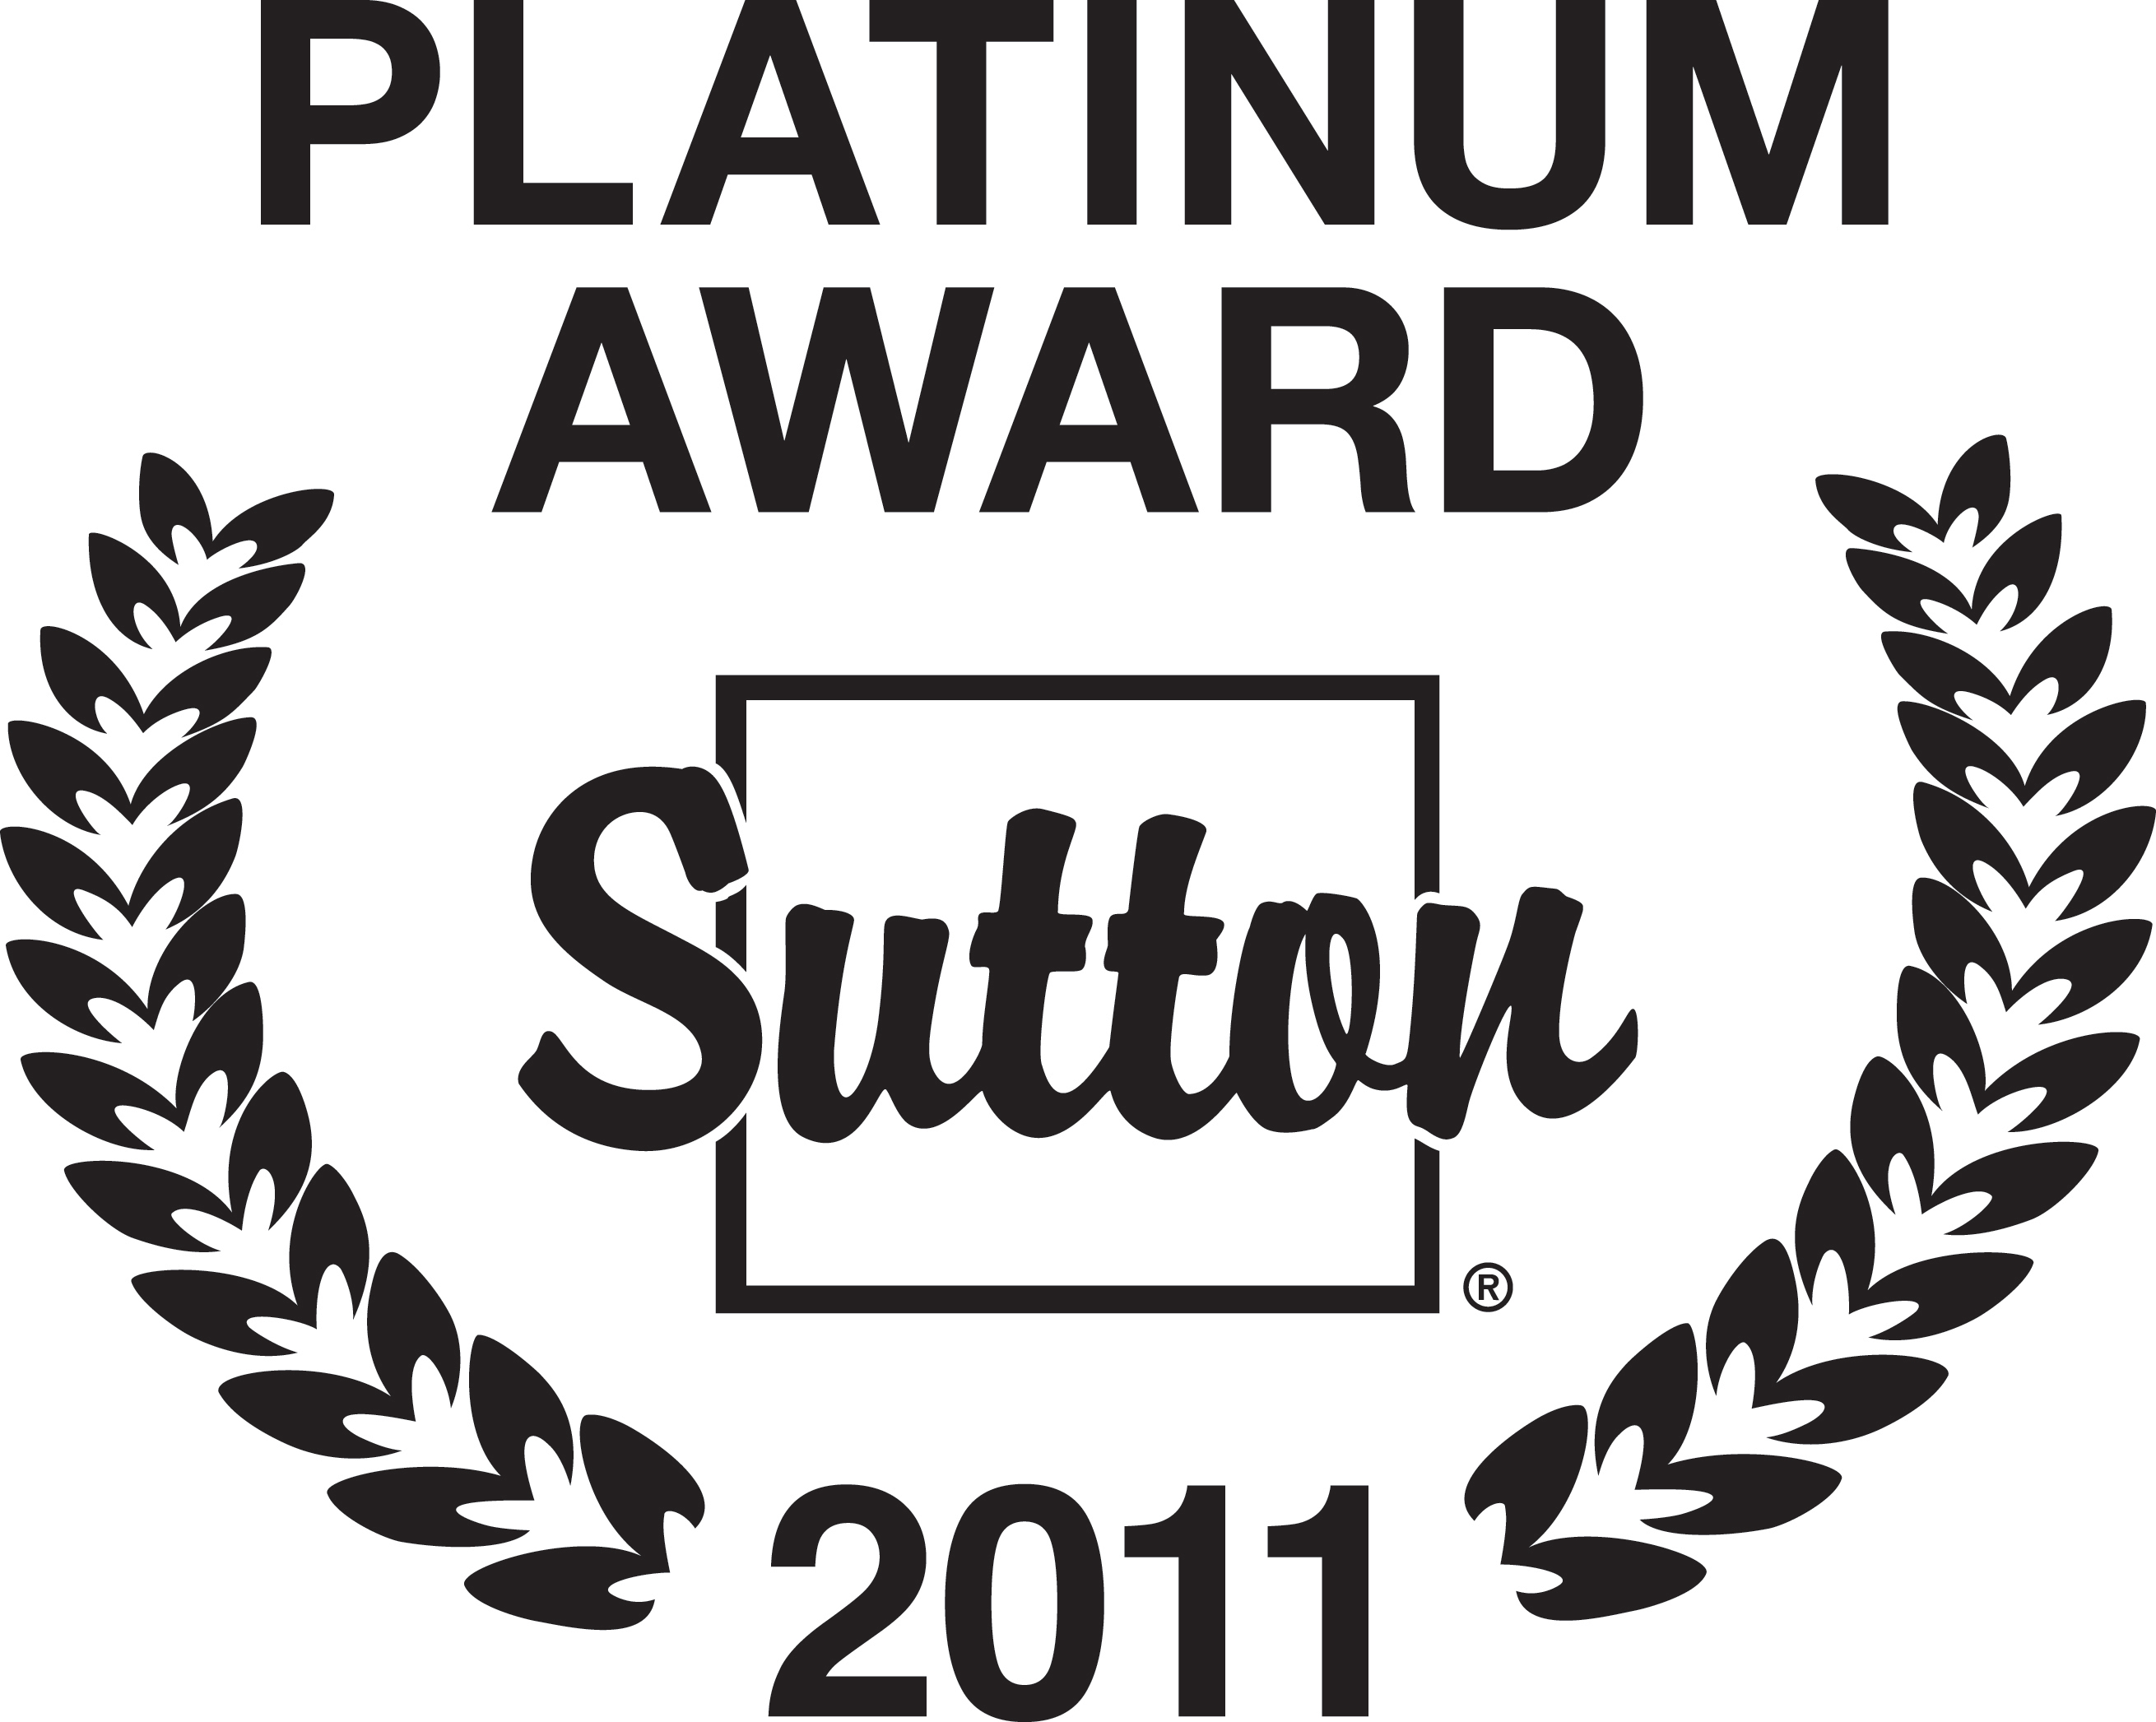 Platinum Award 2011